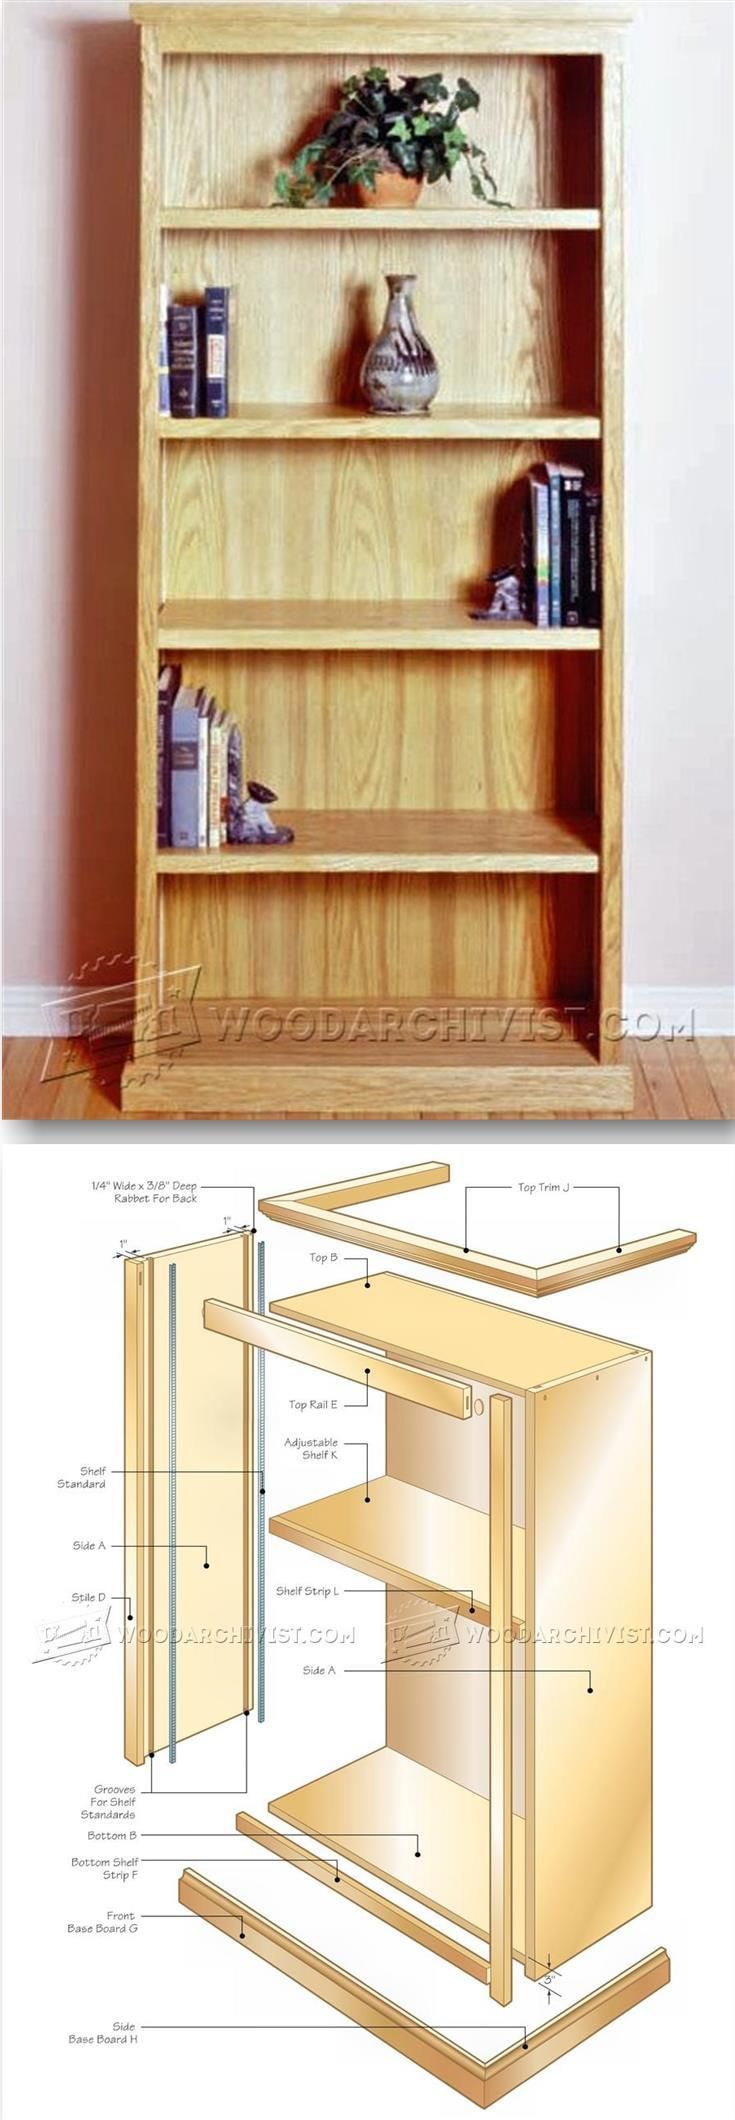 Office Bookcase Plans - Furniture Plans and Projects | WoodArchivist.com